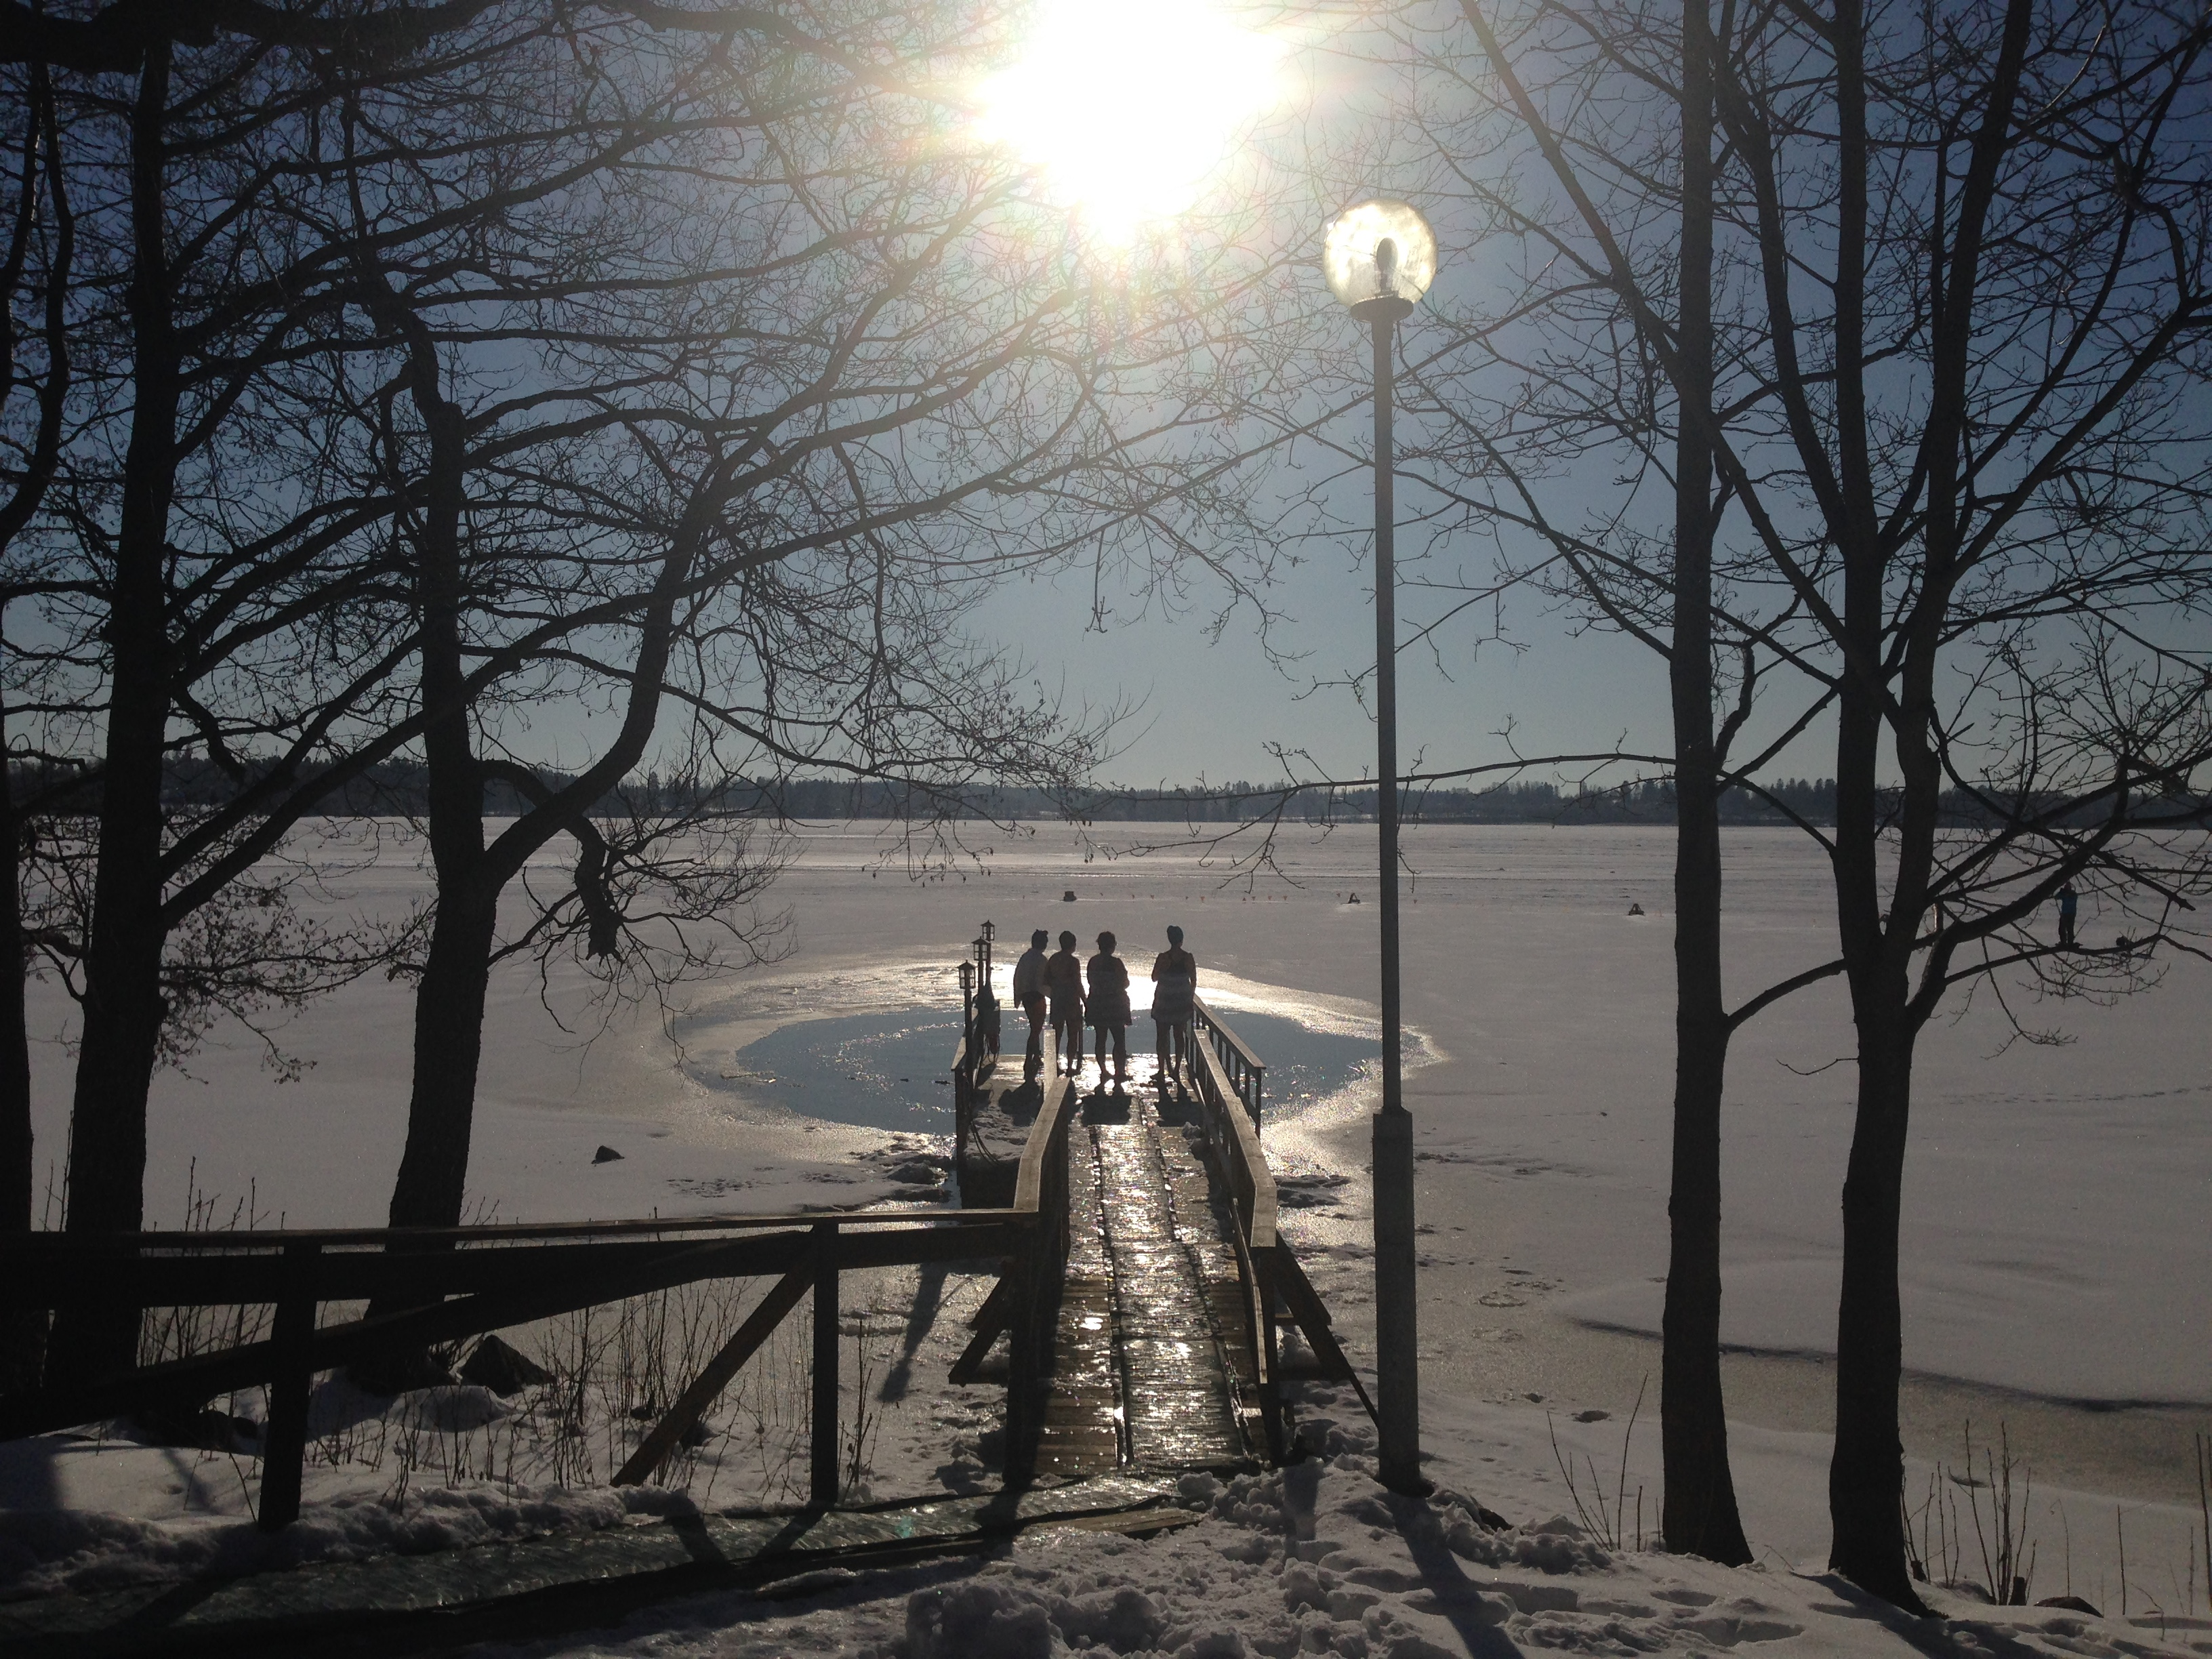 Ice, cold water, sun and friends - what more do you need? Lake Tuusula in Järvenpää.